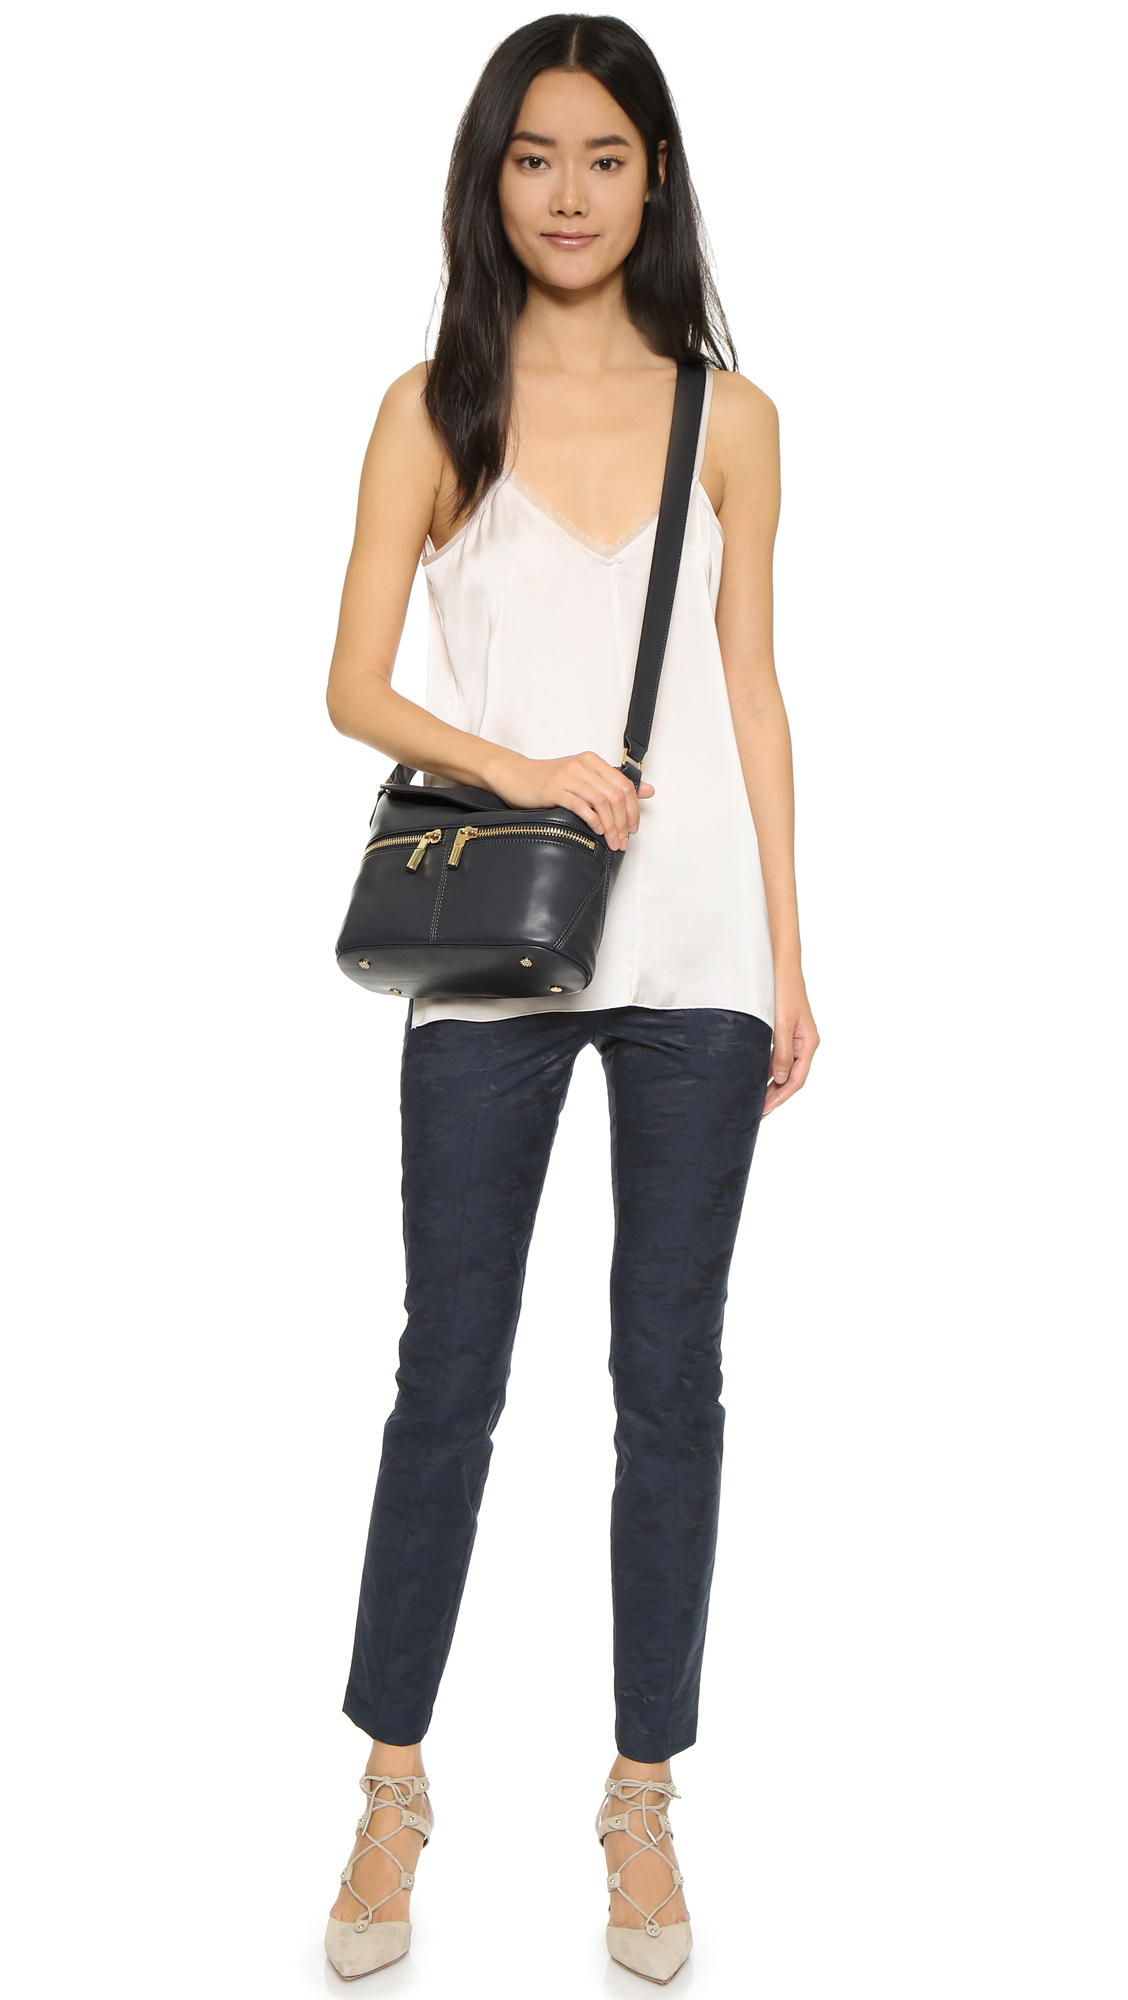 Elizabeth and James Leather James Small Cross Body Bag - Anthracite in Grey